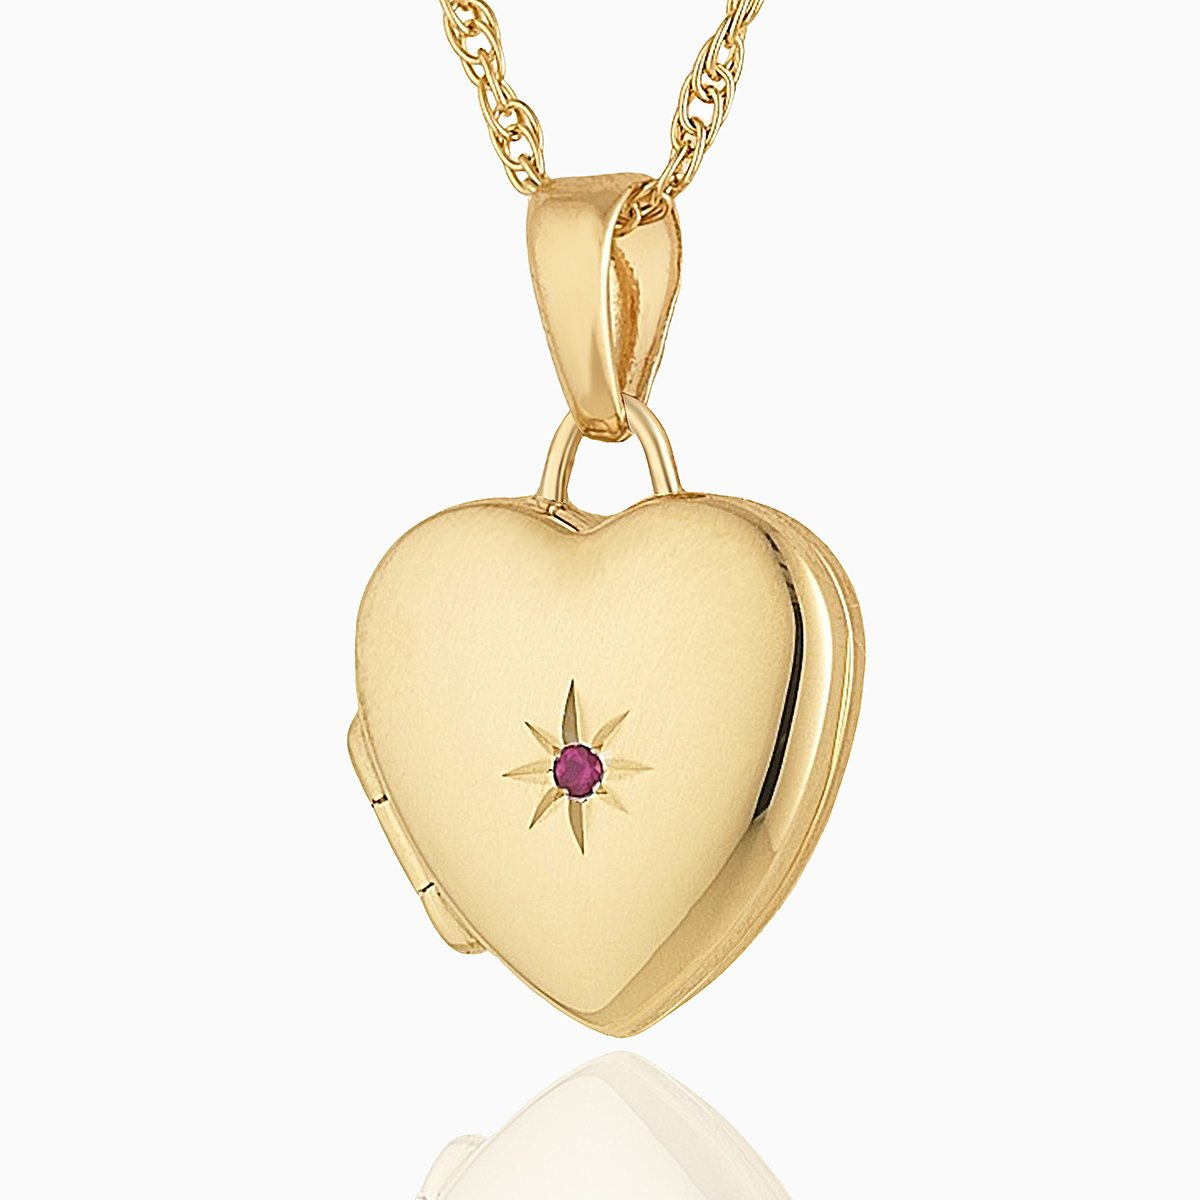 Product title: Petite Gold and Ruby Heart Locket, product type: Locket